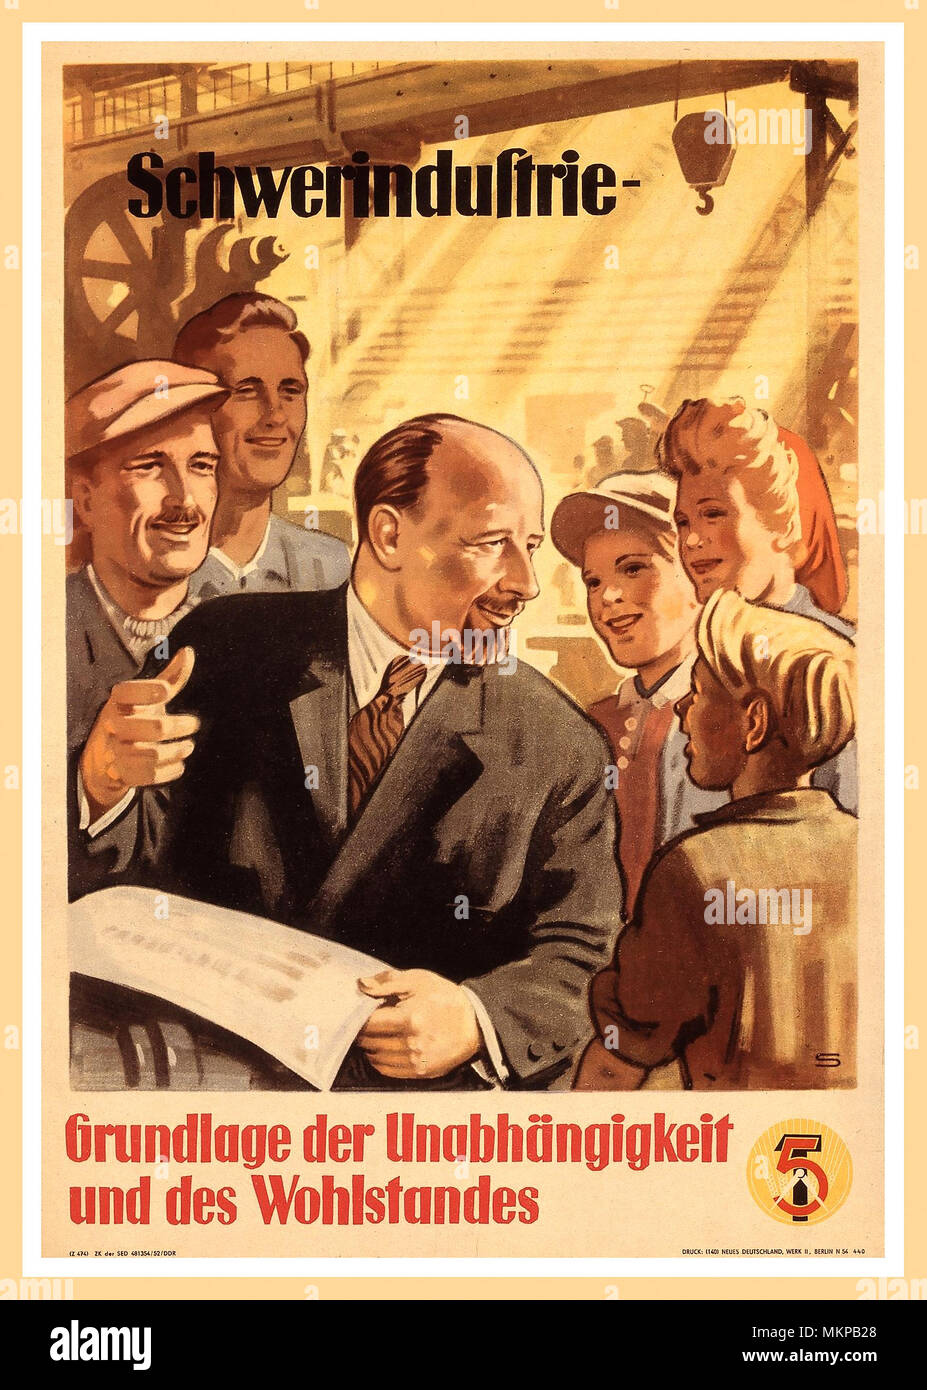 1952 Post-War East Germany GDR German Democratic Republic Propaganda advertising poster from 1950's  for the First Five Year Plan. Walter Ulbricht is shown in the midst of workers. His Heavy industry is at the heart of the First Five-Year Plan in accordance with government propaganda, but inevitably the consumer goods industry is neglected. 'Heavy industry – the basis of independence and prosperity' In the GDR after its founding in 1949, the forms of political ownership and the GDR economic system are rigorously changed to accord with the Soviet model. - Stock Image